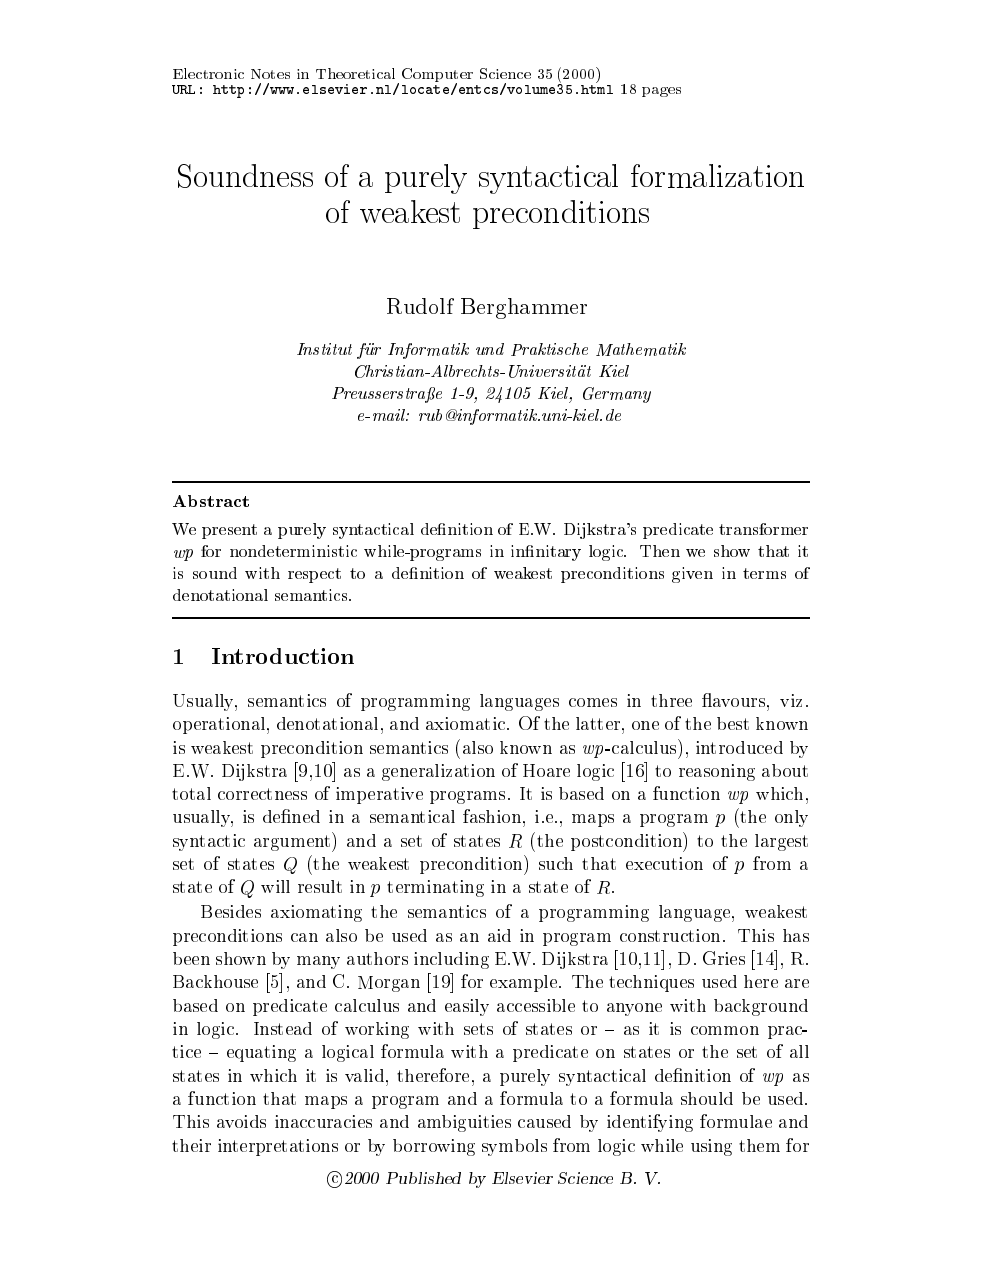 Soundness Of A Purely Syntactical Formalization Of Weakest